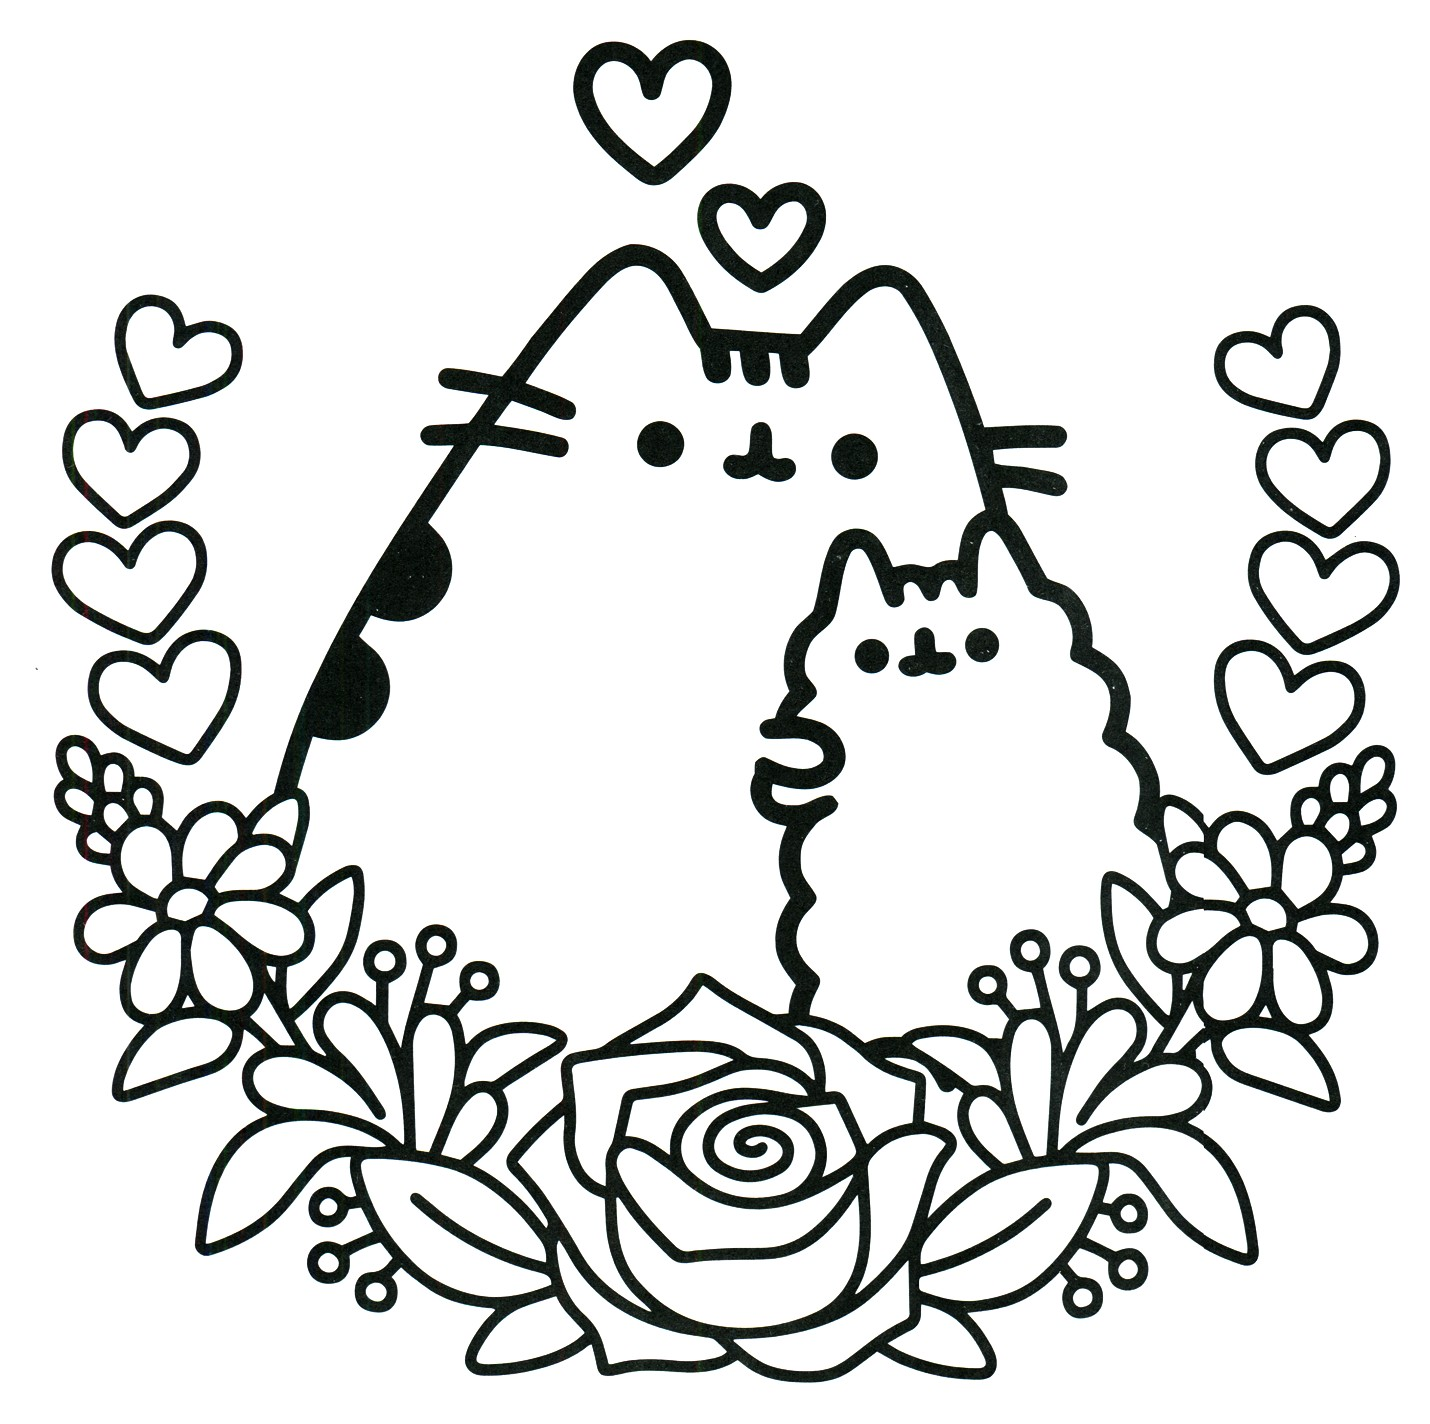 1430x1424 Unicorn Coloring Pages Rainbow New Kawaii Cat Unicorn Coloring